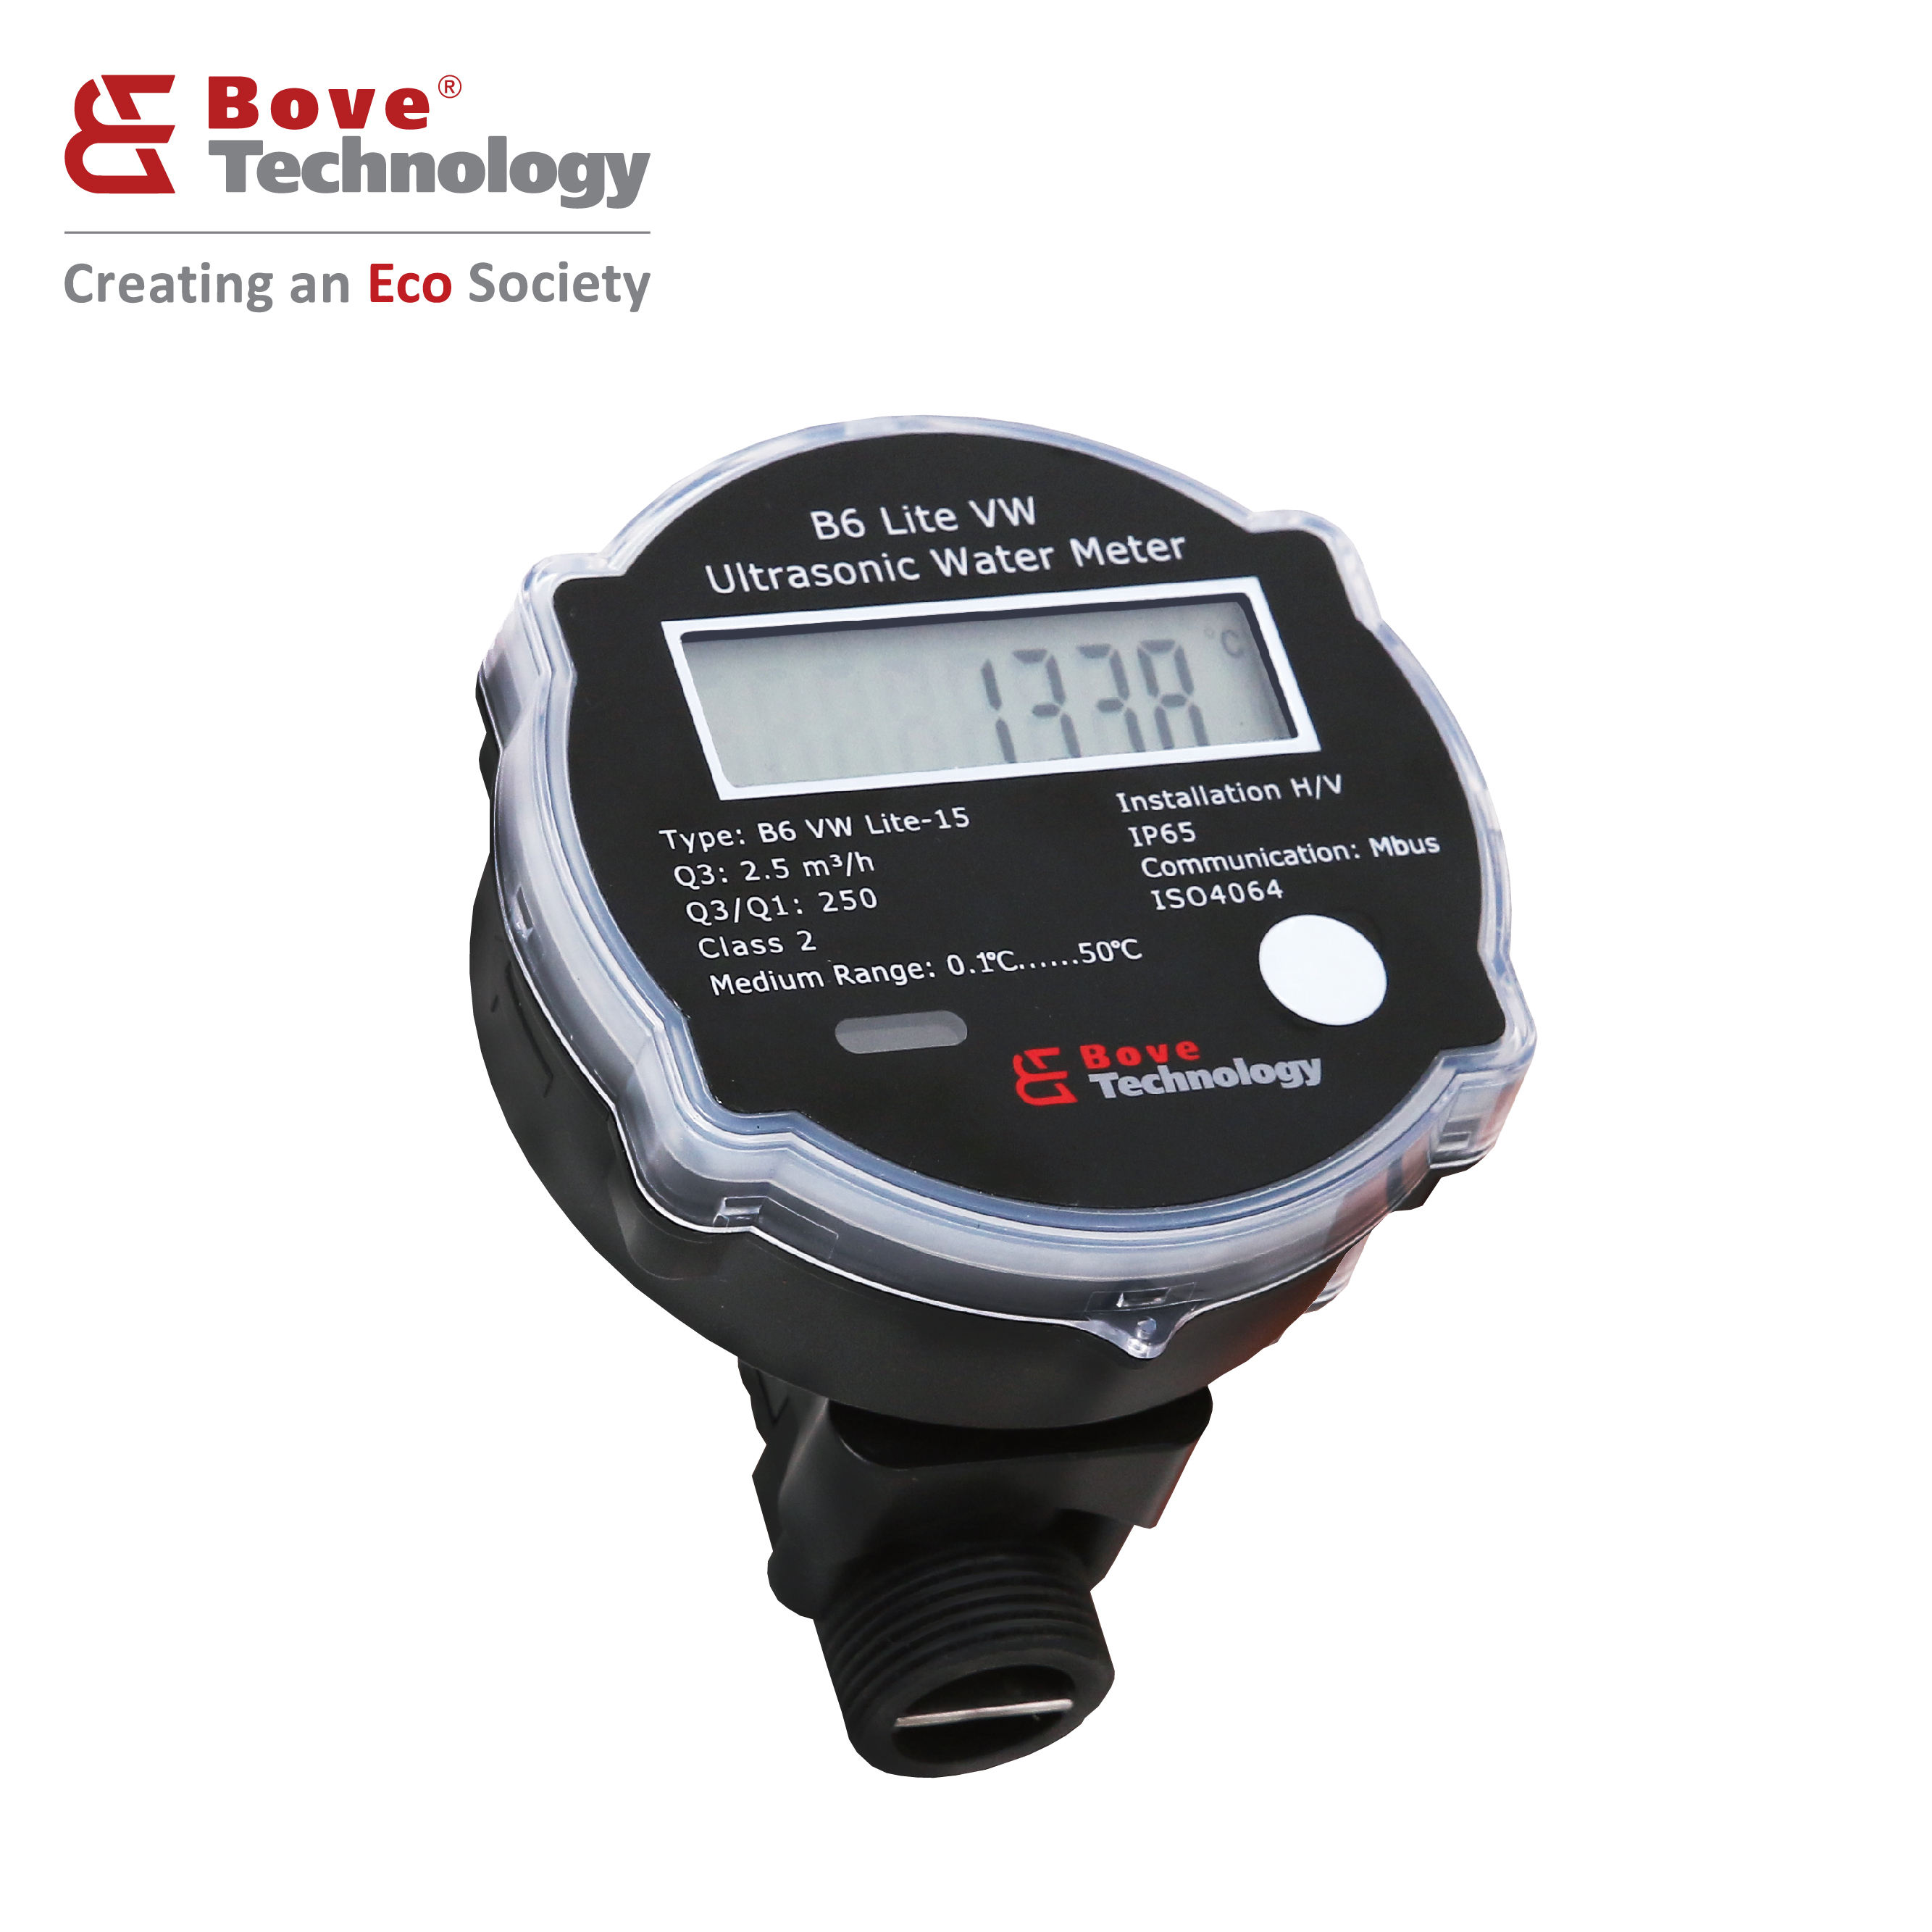 B6 Lite VW AMR Ultrasonic Smart Digital Ultrasonic Water Meter